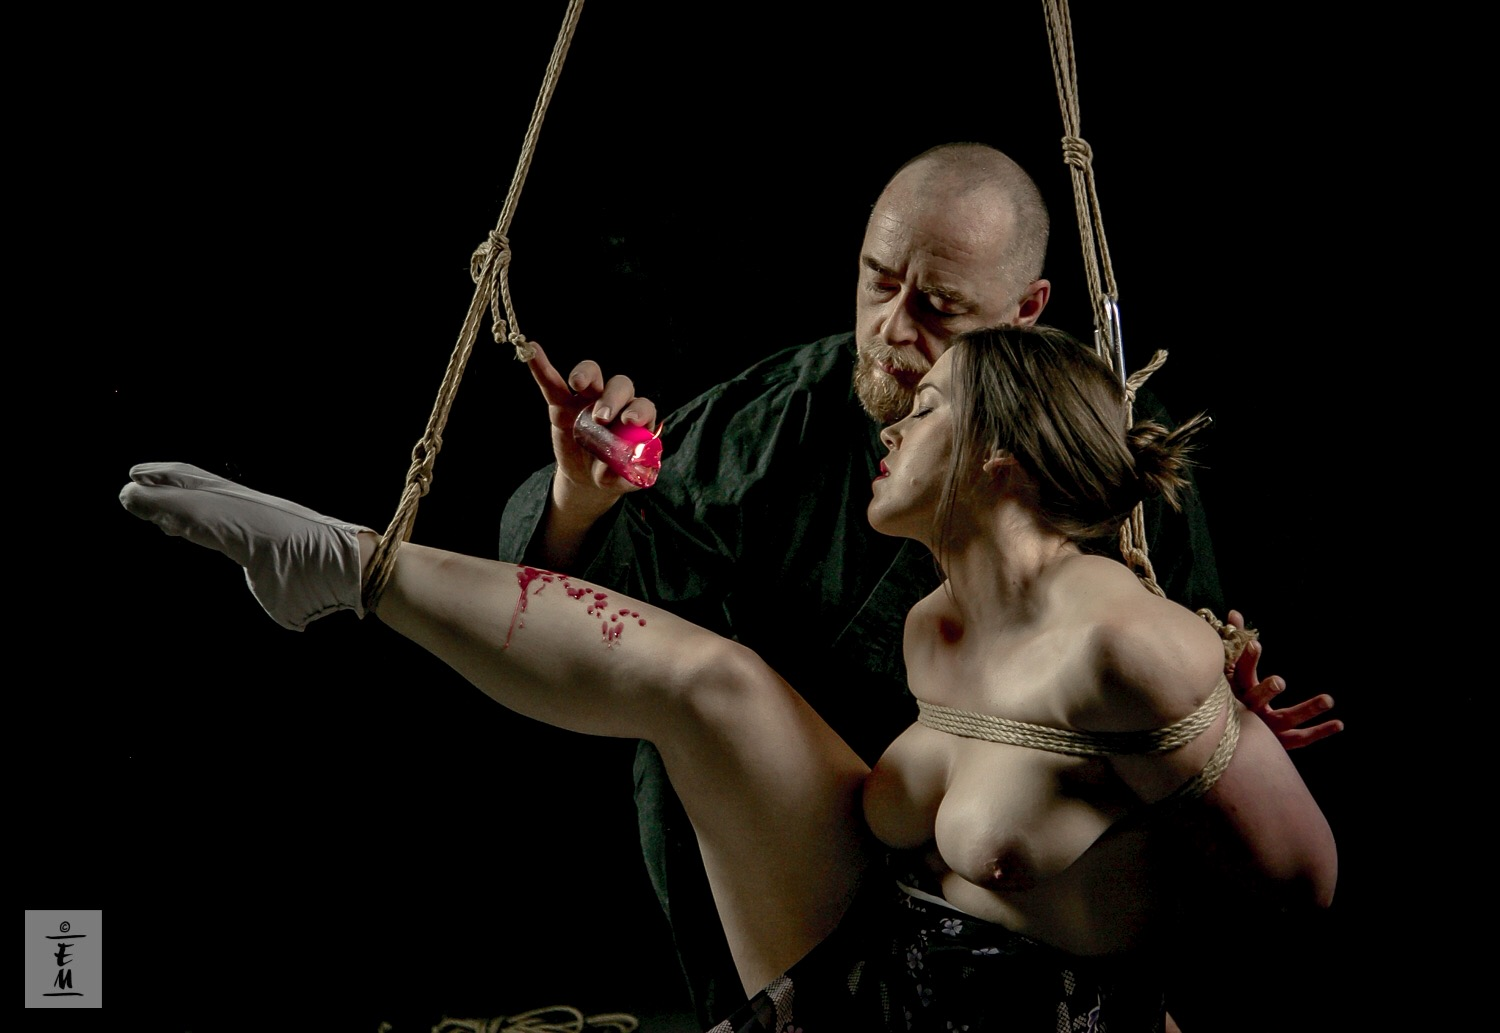 Shibari intensive in Memphis Tennessee April 2016